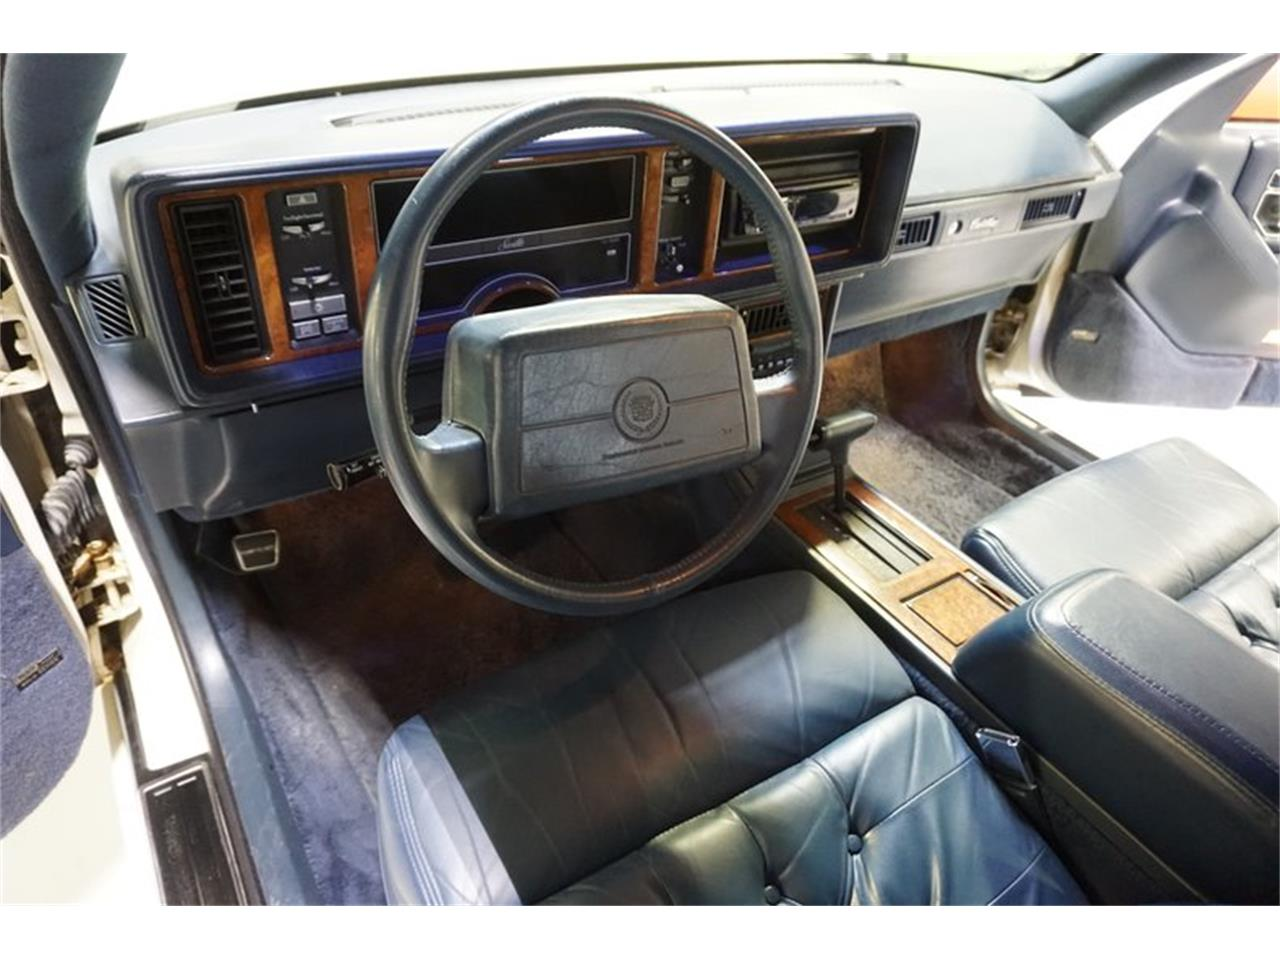 1991 cadillac seville for sale in solon oh classiccarsbay com classiccarsbay